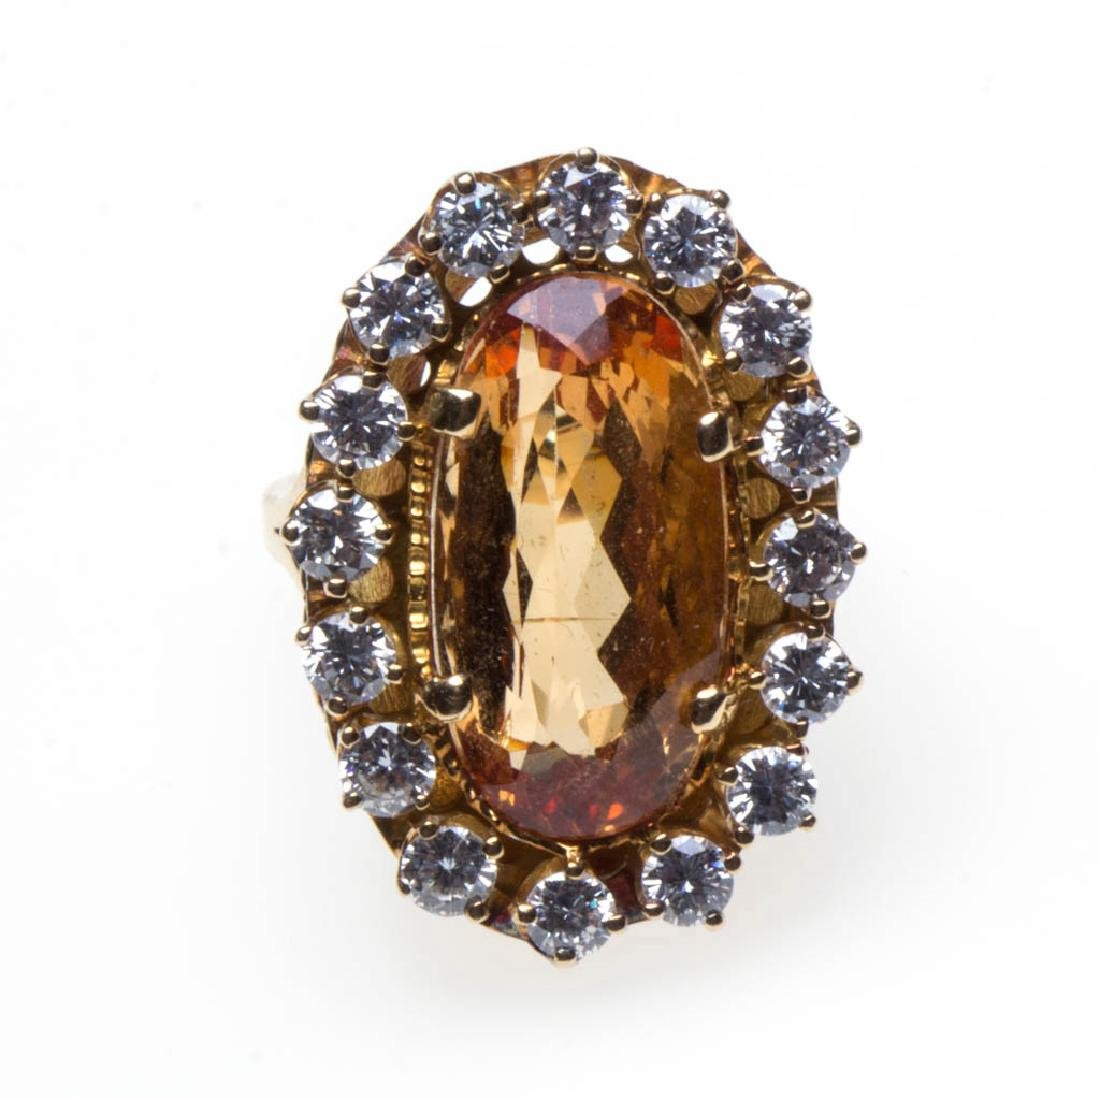 VINTAGE 18K GOLD, DIAMOND, AND IMPERIAL TOPAZ RING